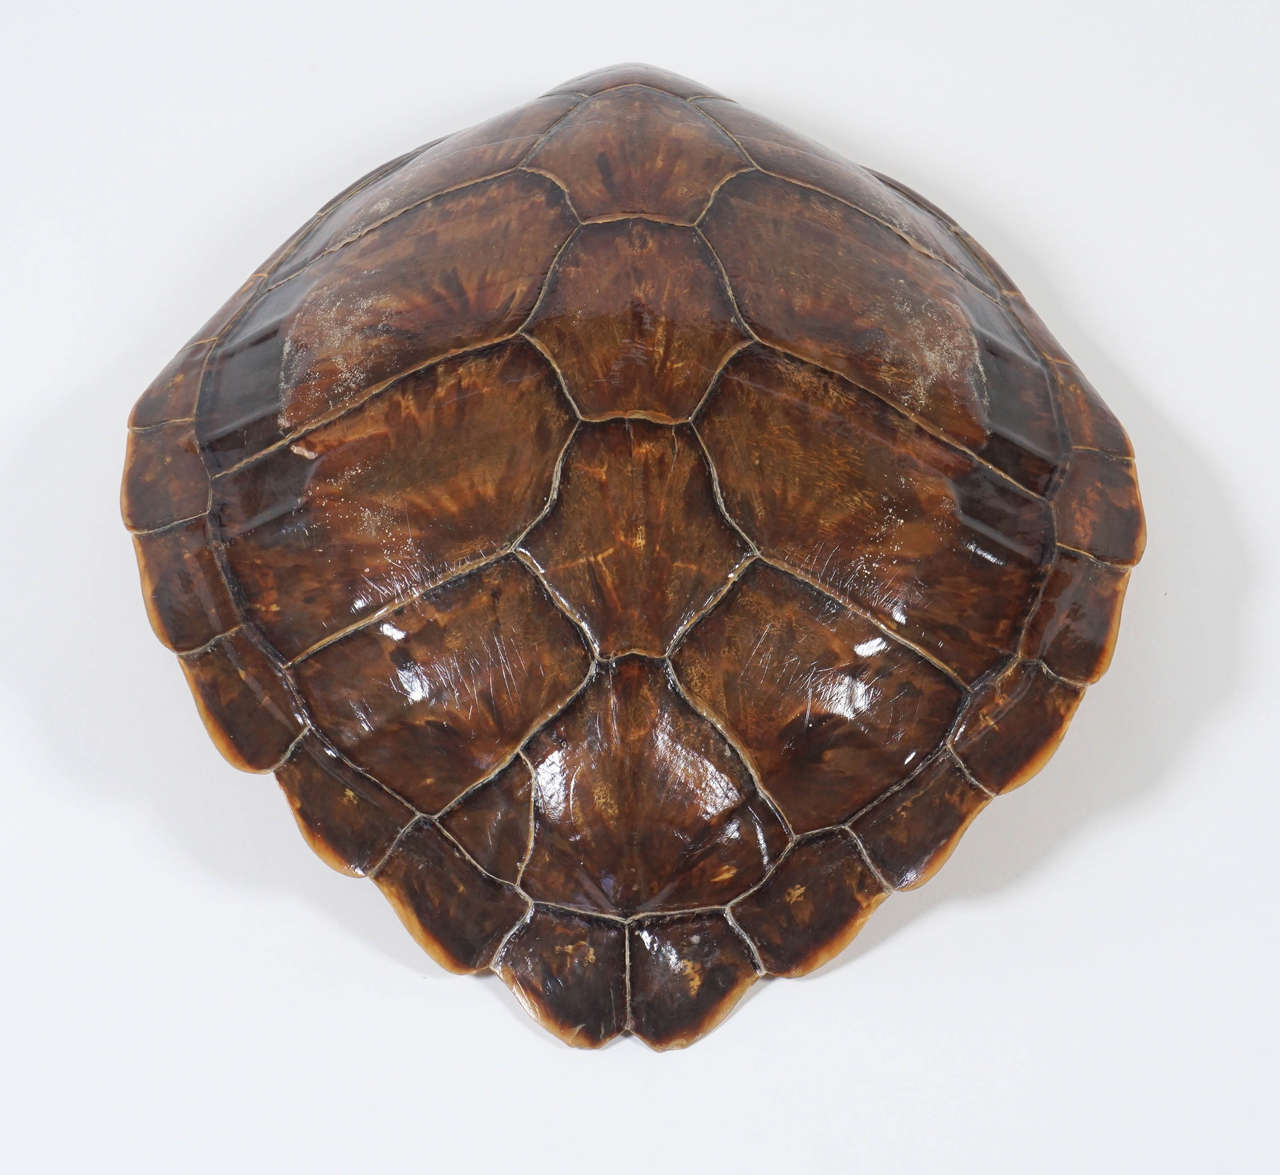 Antique 19th Century Large Tortoiseshell Or Carapace At